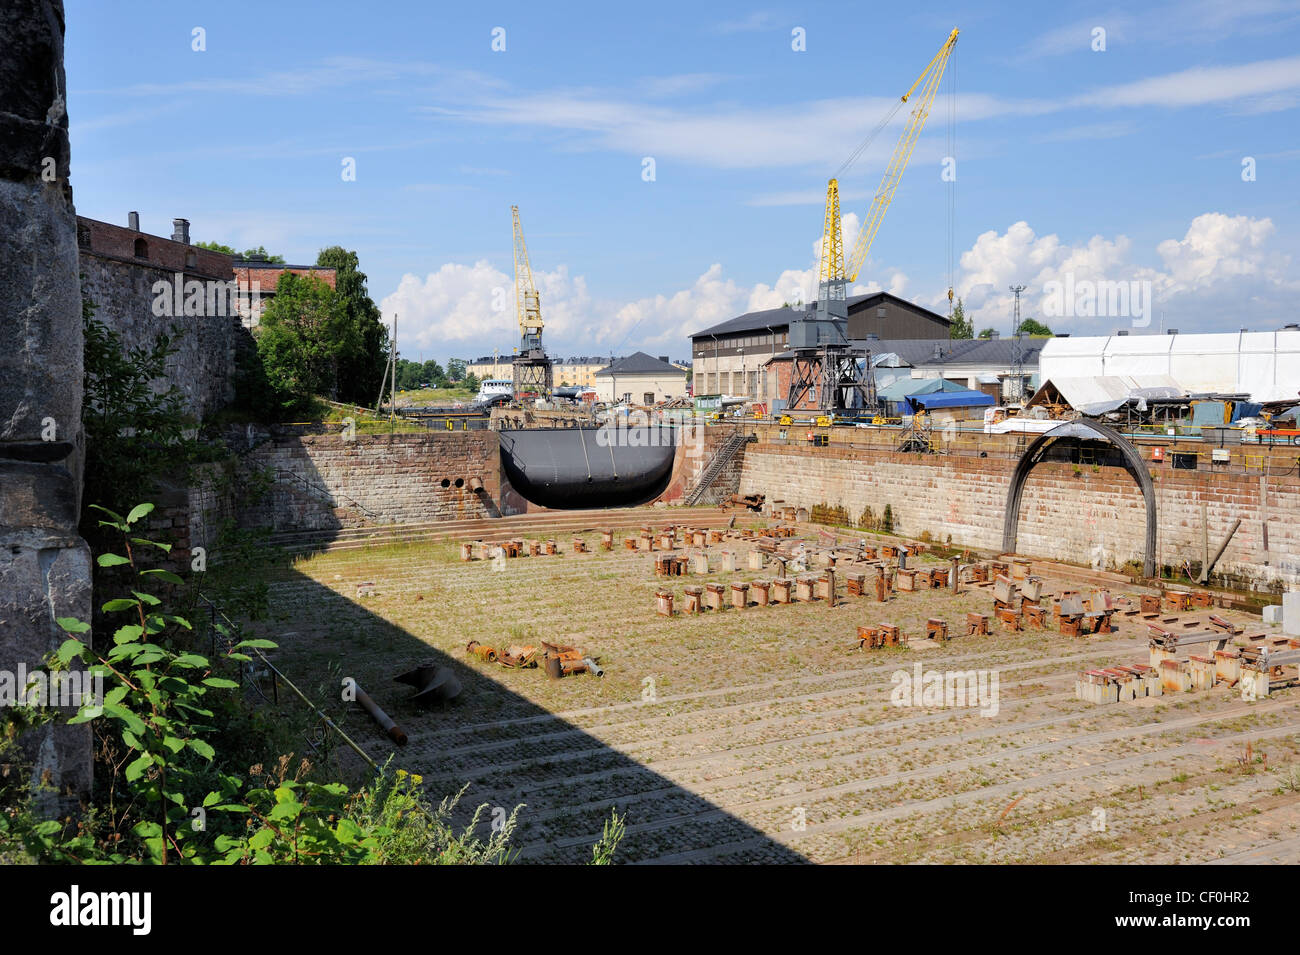 The large dry-dock is still used for repair and winter storage of old ships. The dry-dock is unique in the world - Stock Image